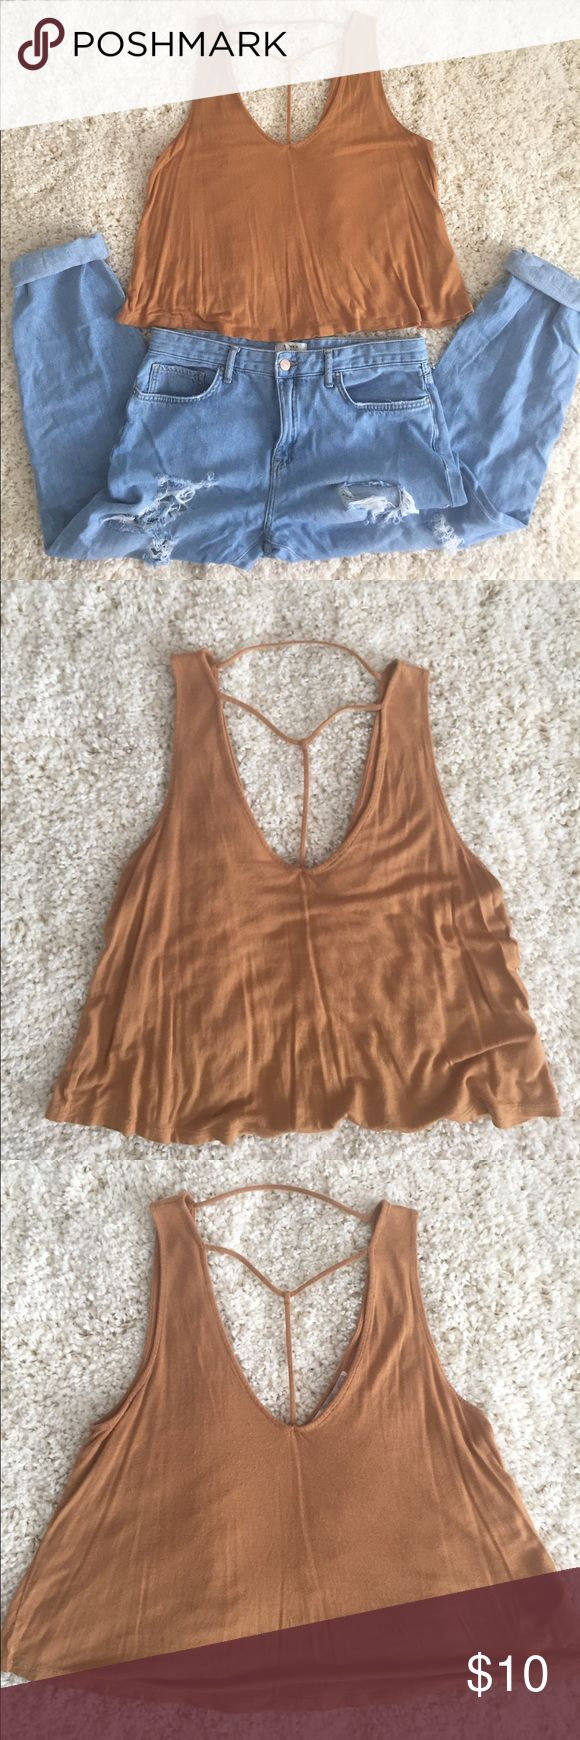 forever 21 • brown strappy top forever 21 • brown strappy top. T shaped strappy design in front. Simple & chic top! Dress it up or down. Size medium. Minor piling. It's a crop style for me, I'm 5'7. Forever 21 Tops Crop Tops